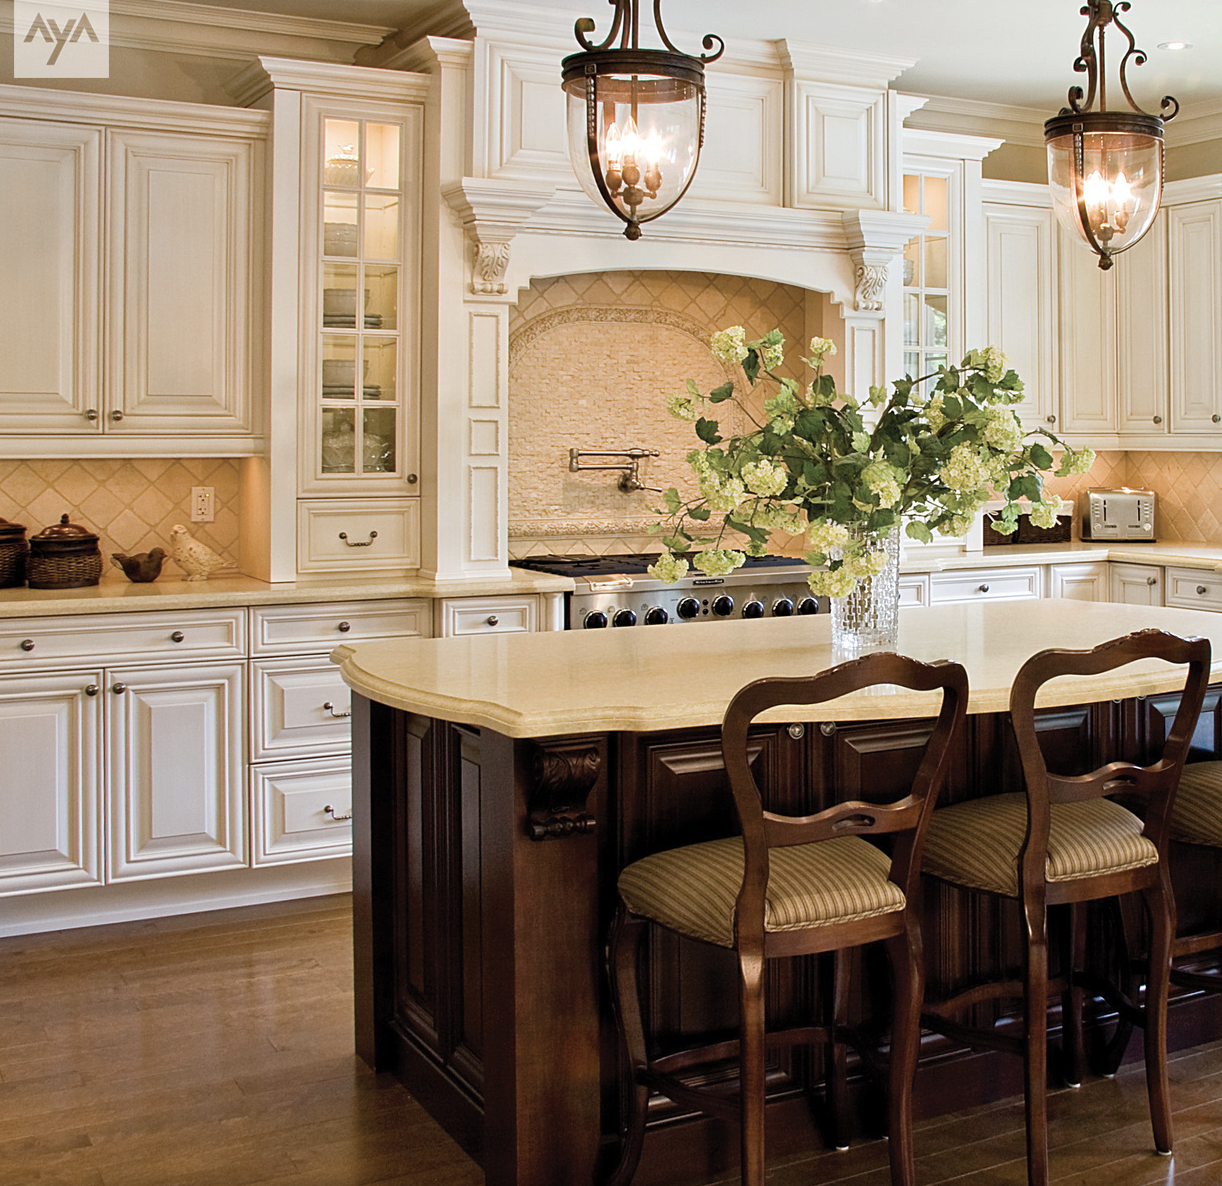 Home   Innovative Kitchens by Design